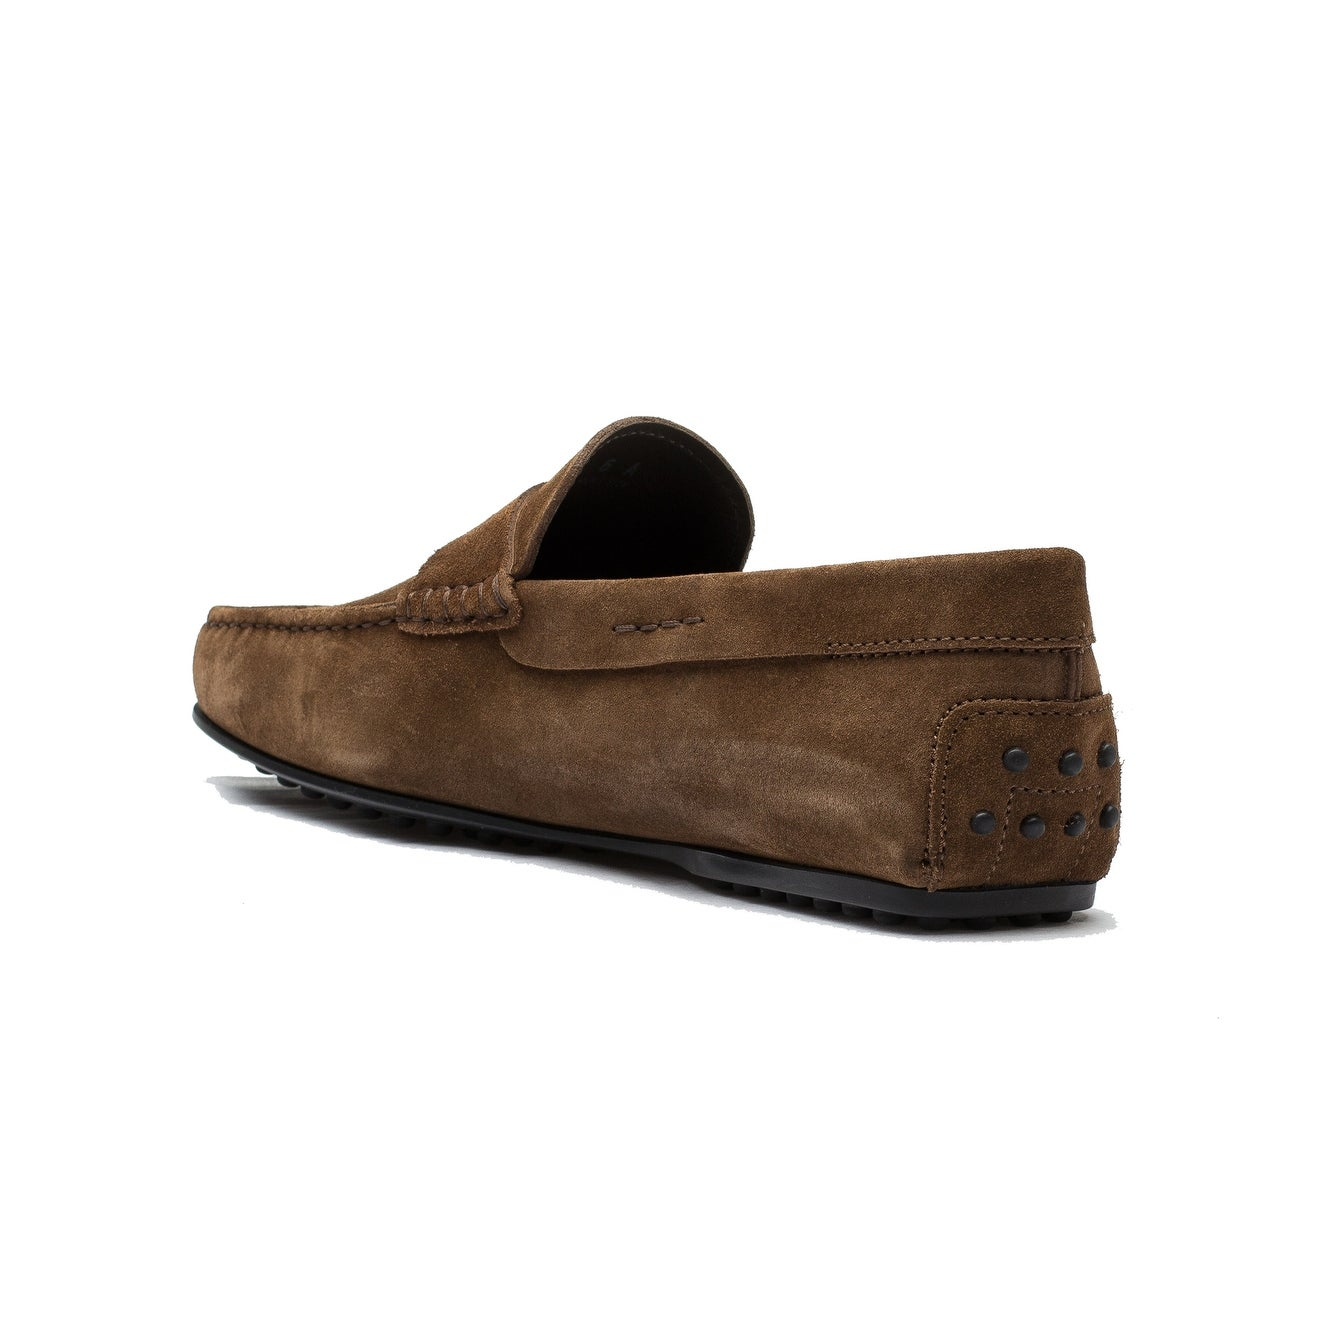 197bc4456c3 Shop Tod s Men s Suede Moccasins City Gommino Loafer Shoes Brown - Free  Shipping Today - Overstock - 13759596